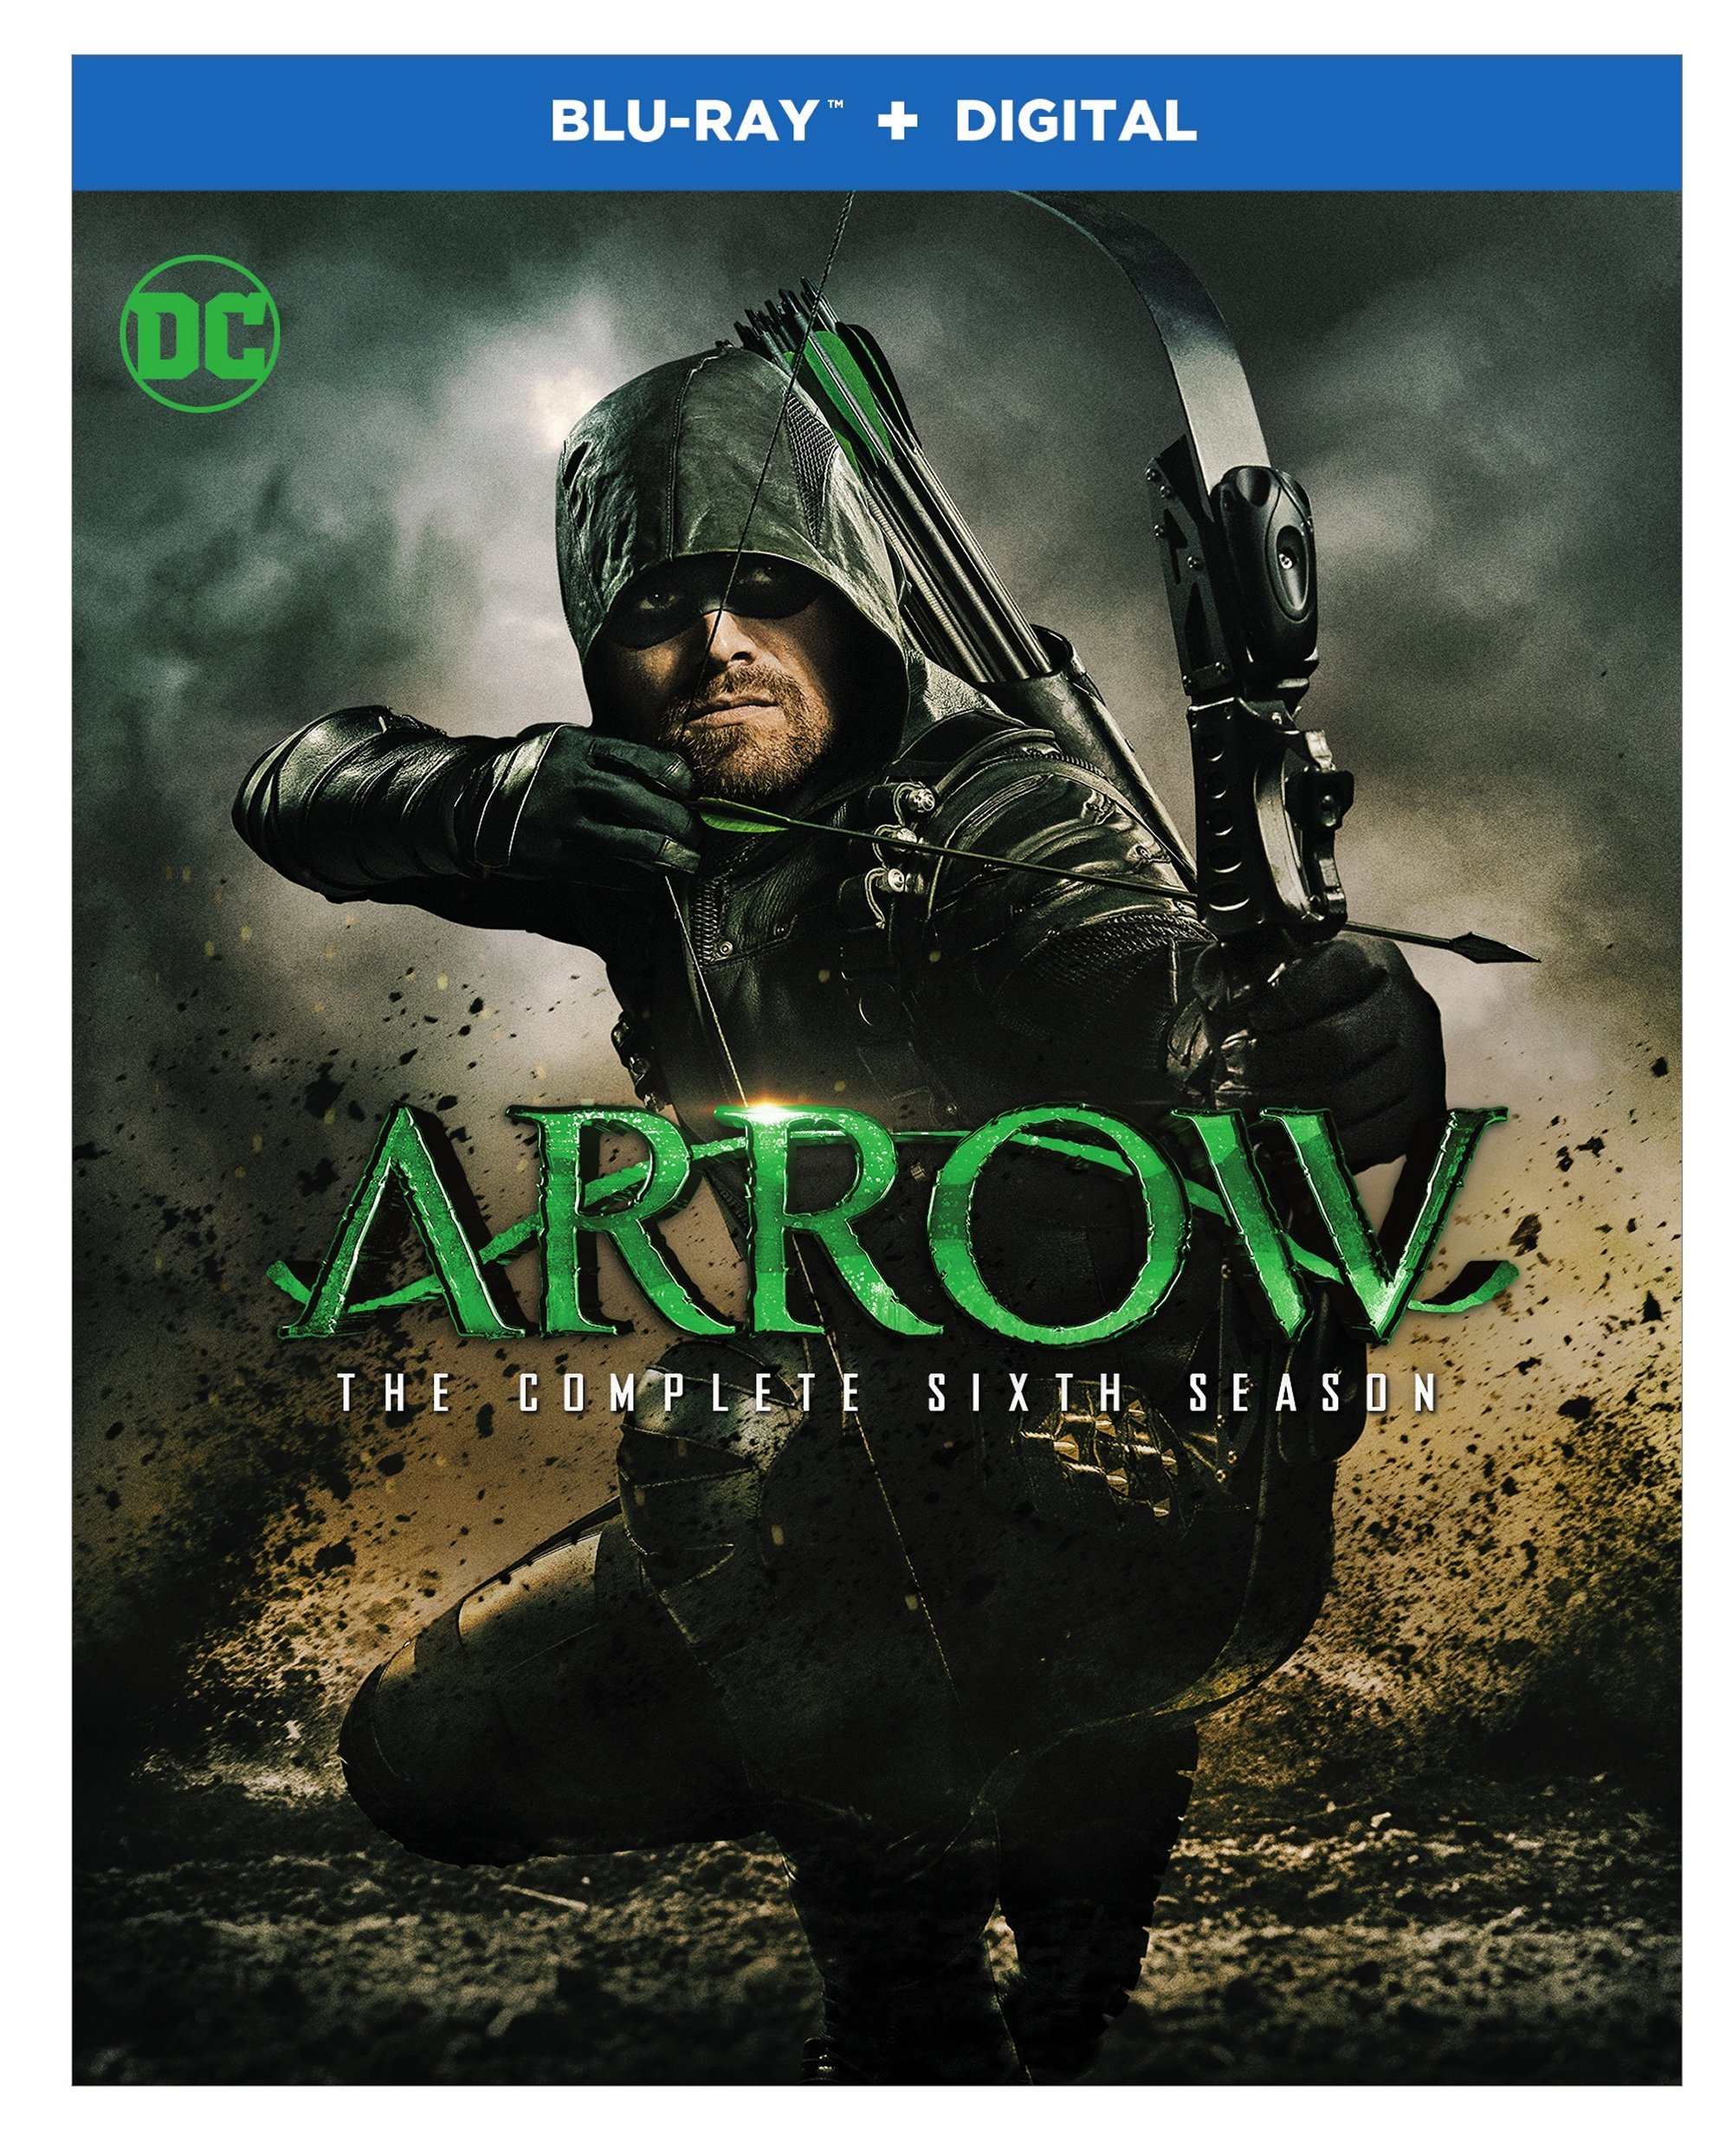 Blu-ray : Arrow: The Complete Sixth Season (dc) (Boxed Set, 4PC)